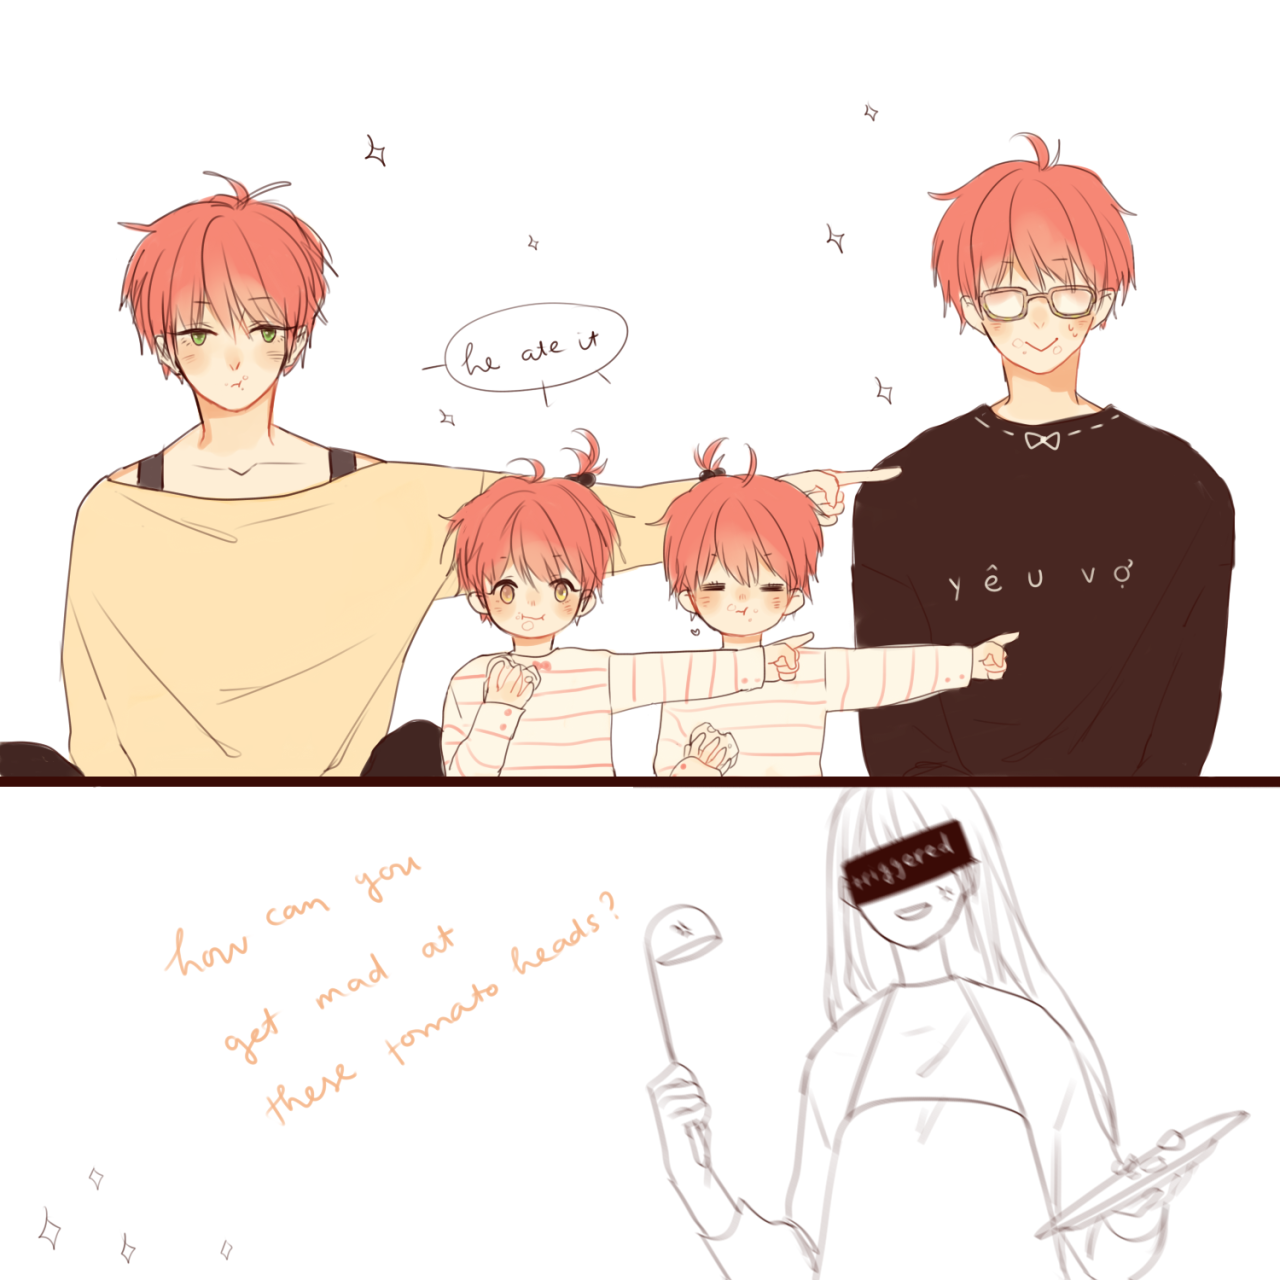 If Saeyoung and MC have kids, Saeran might be baby sitter ...